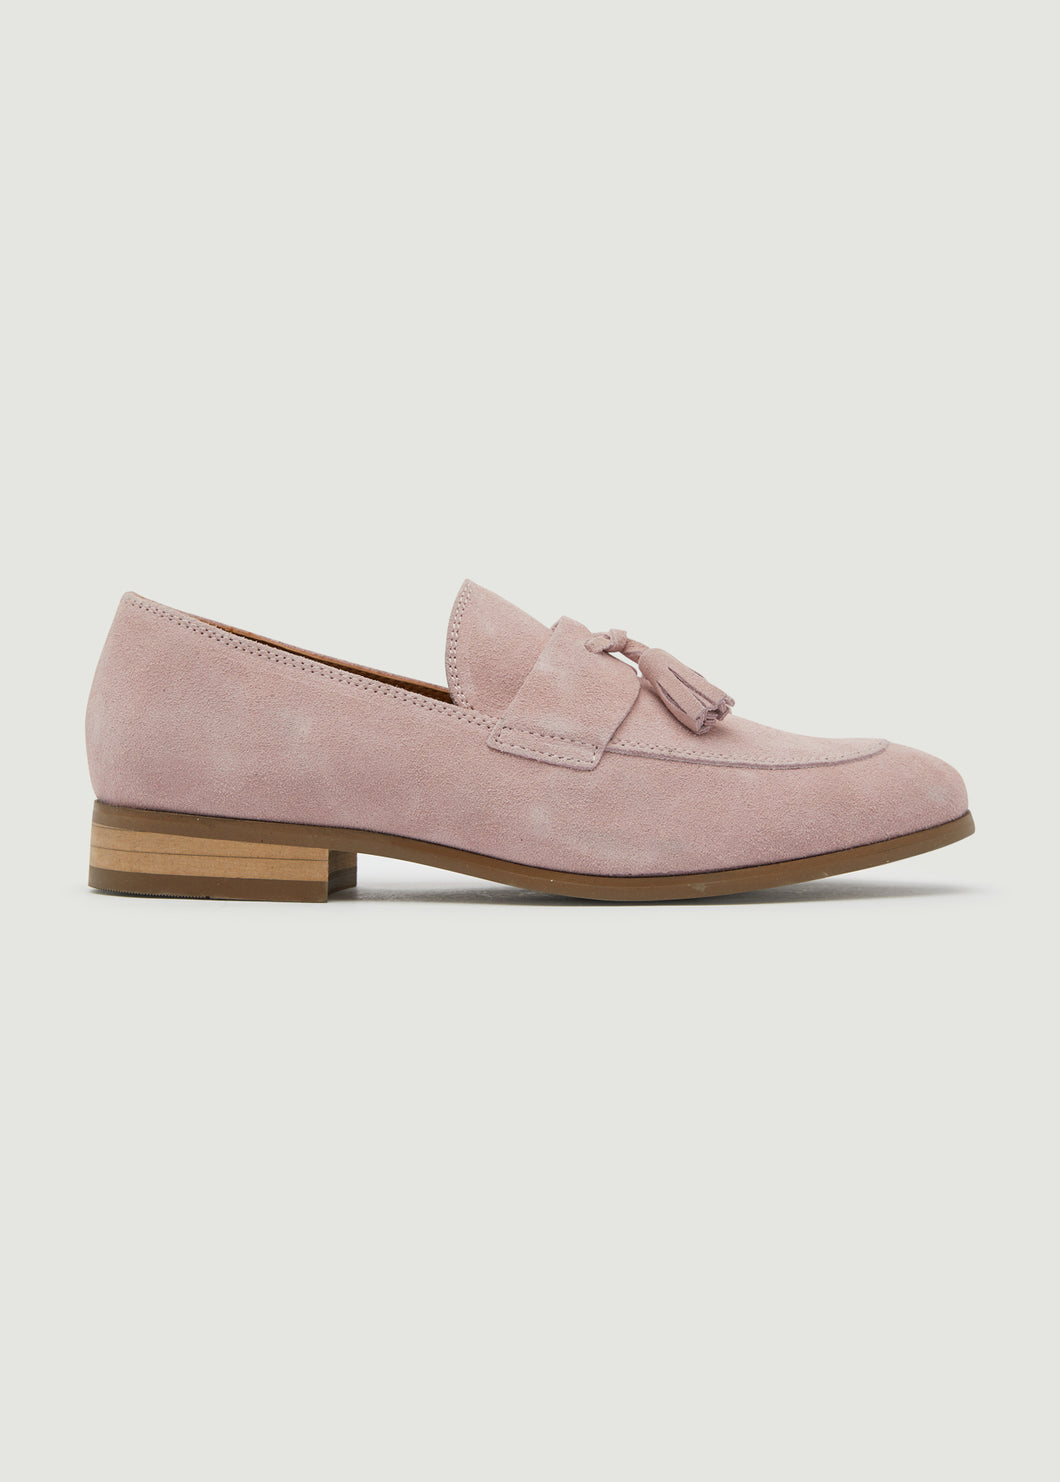 Moorhouse Loafers - Pink